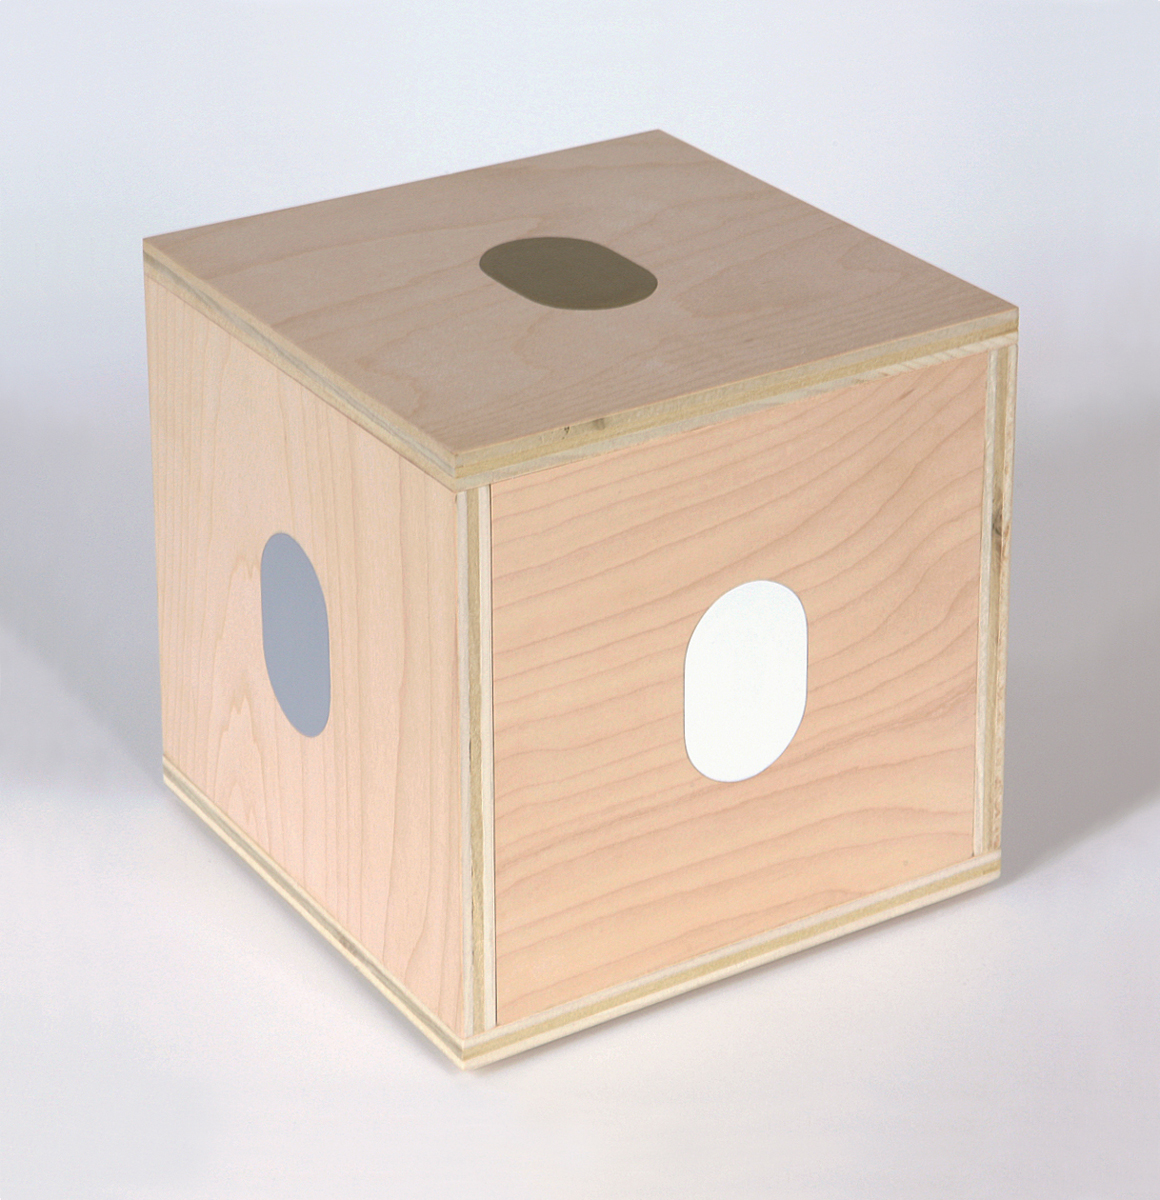 A plywood cube with gold, grey and white ovals painted on the top and sides.